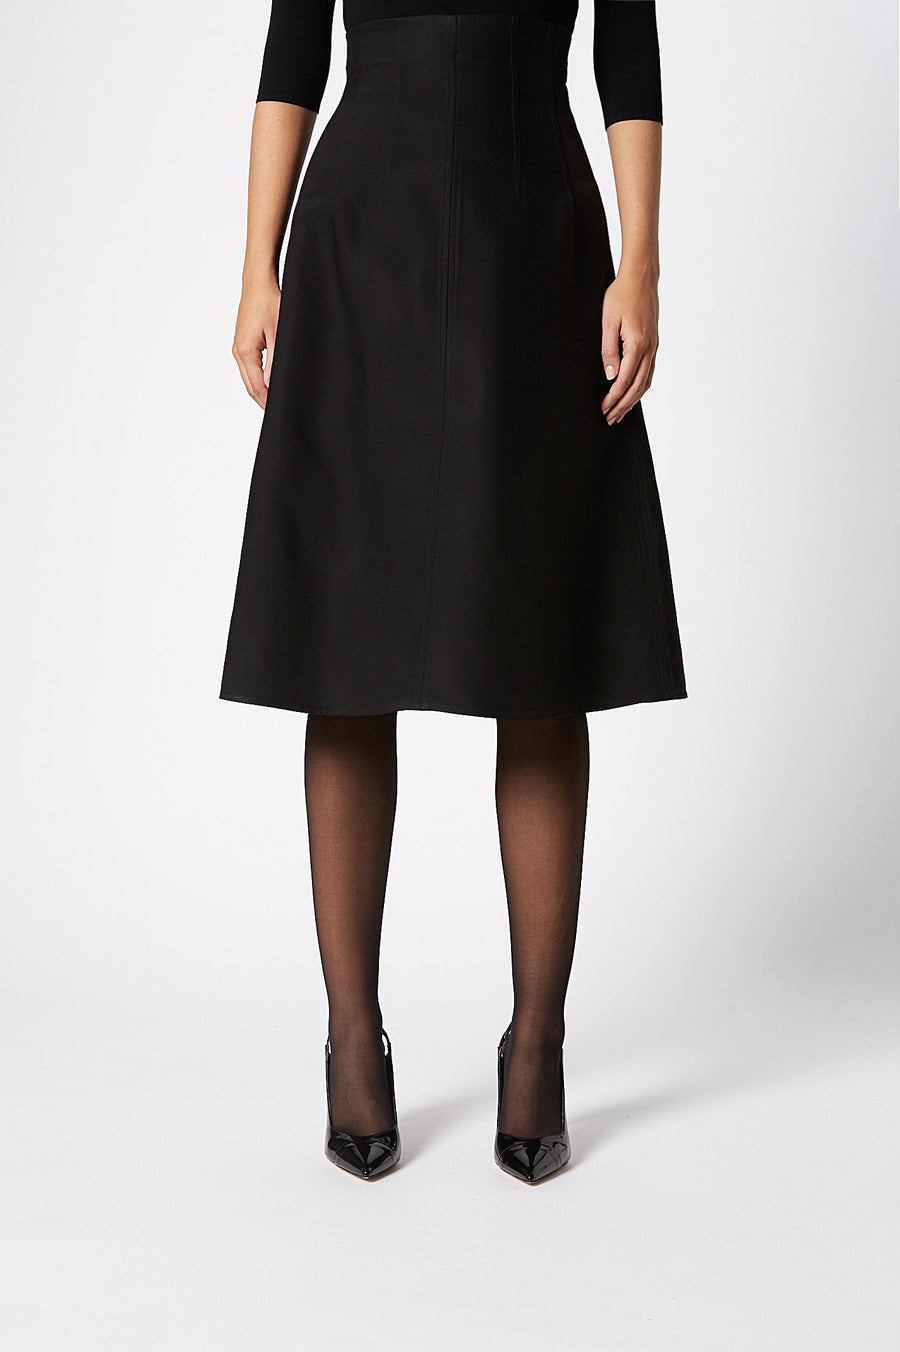 Classic A Line Skirt ,sits at your narrowest point, A-line silhouette, falls just below knee, Color Black